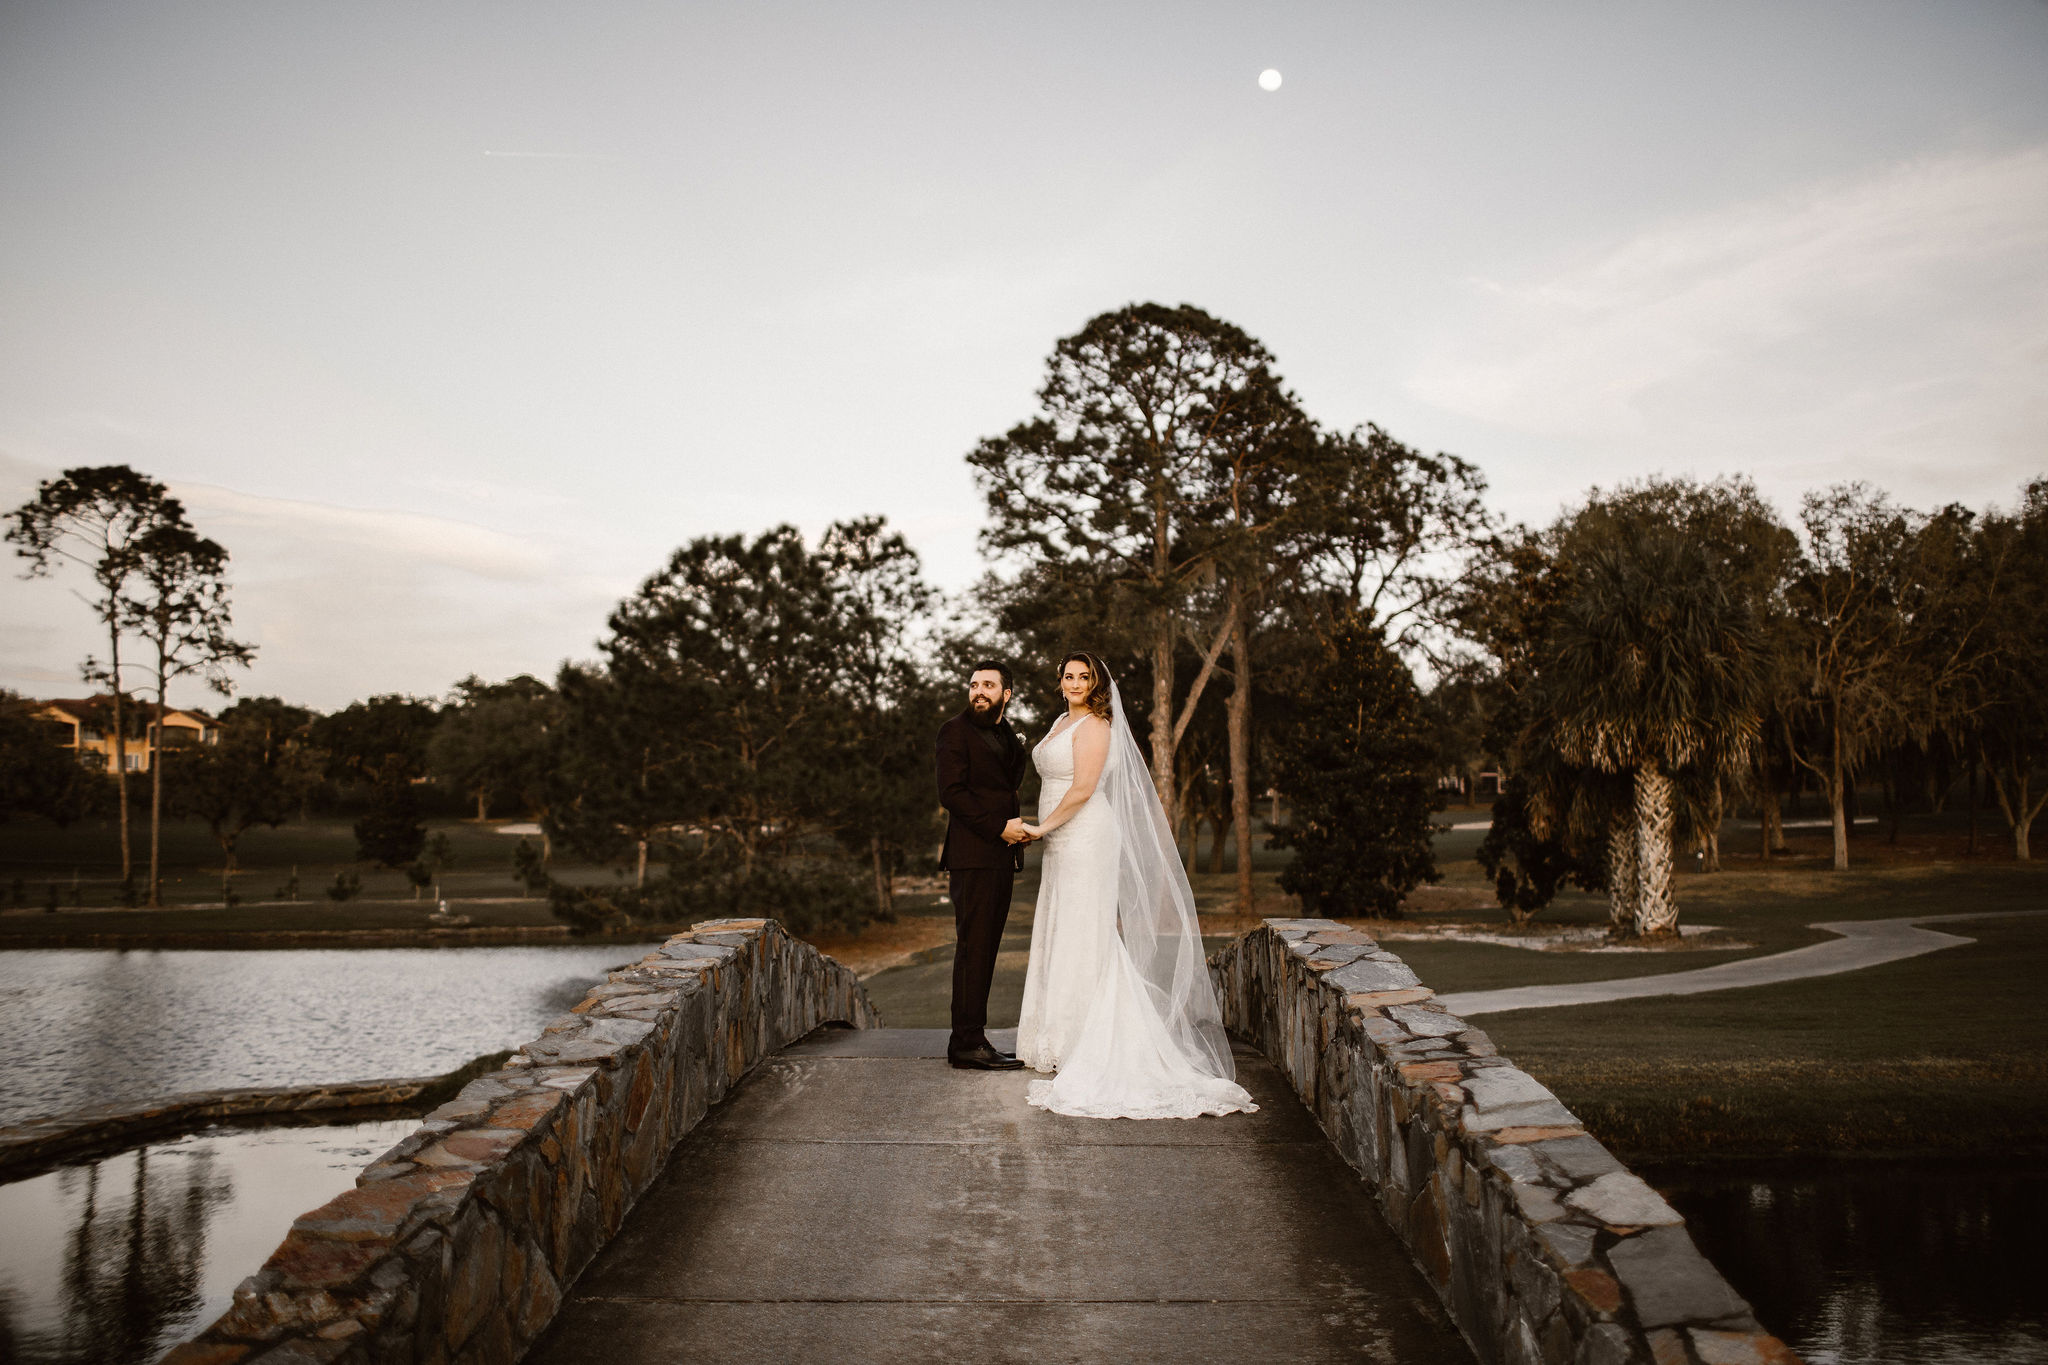 Bride and Groom on Bridge with Full Moon in Distance